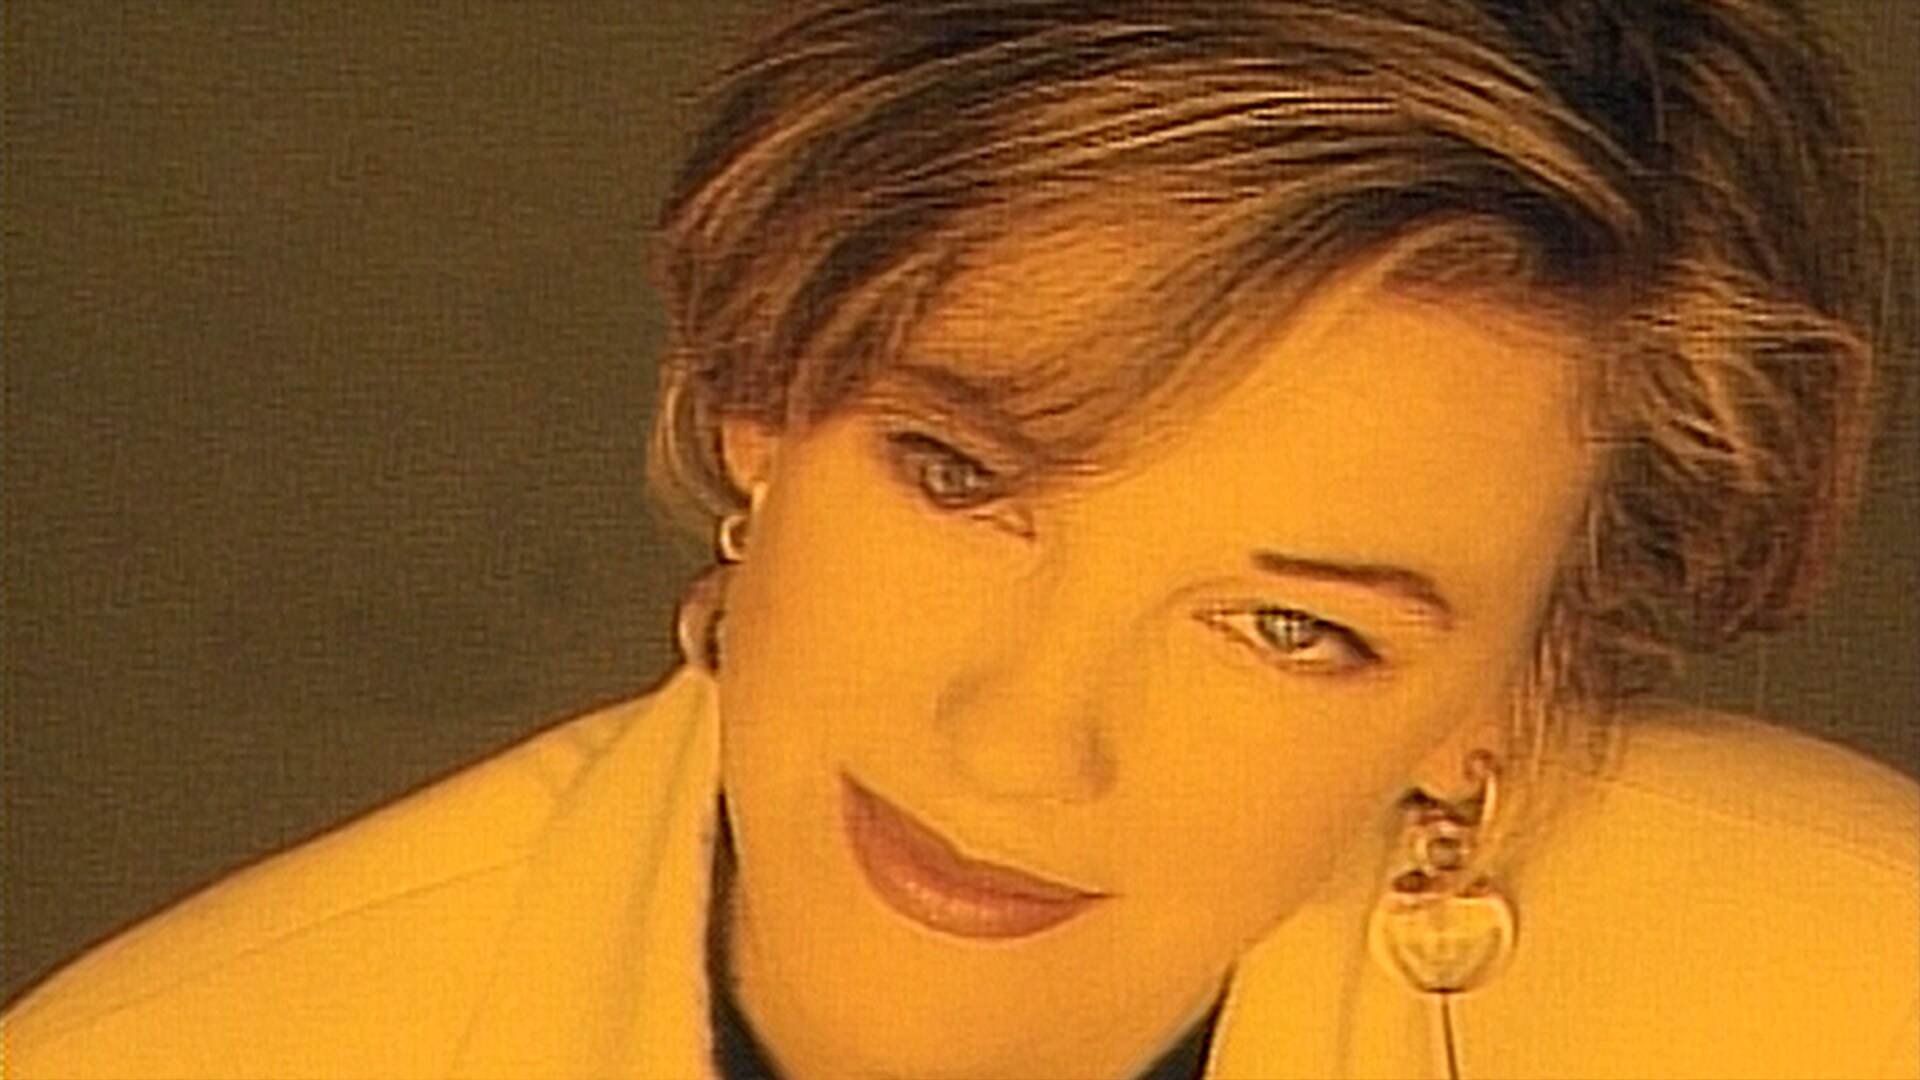 Catherine O'Hara: April 13, 1991